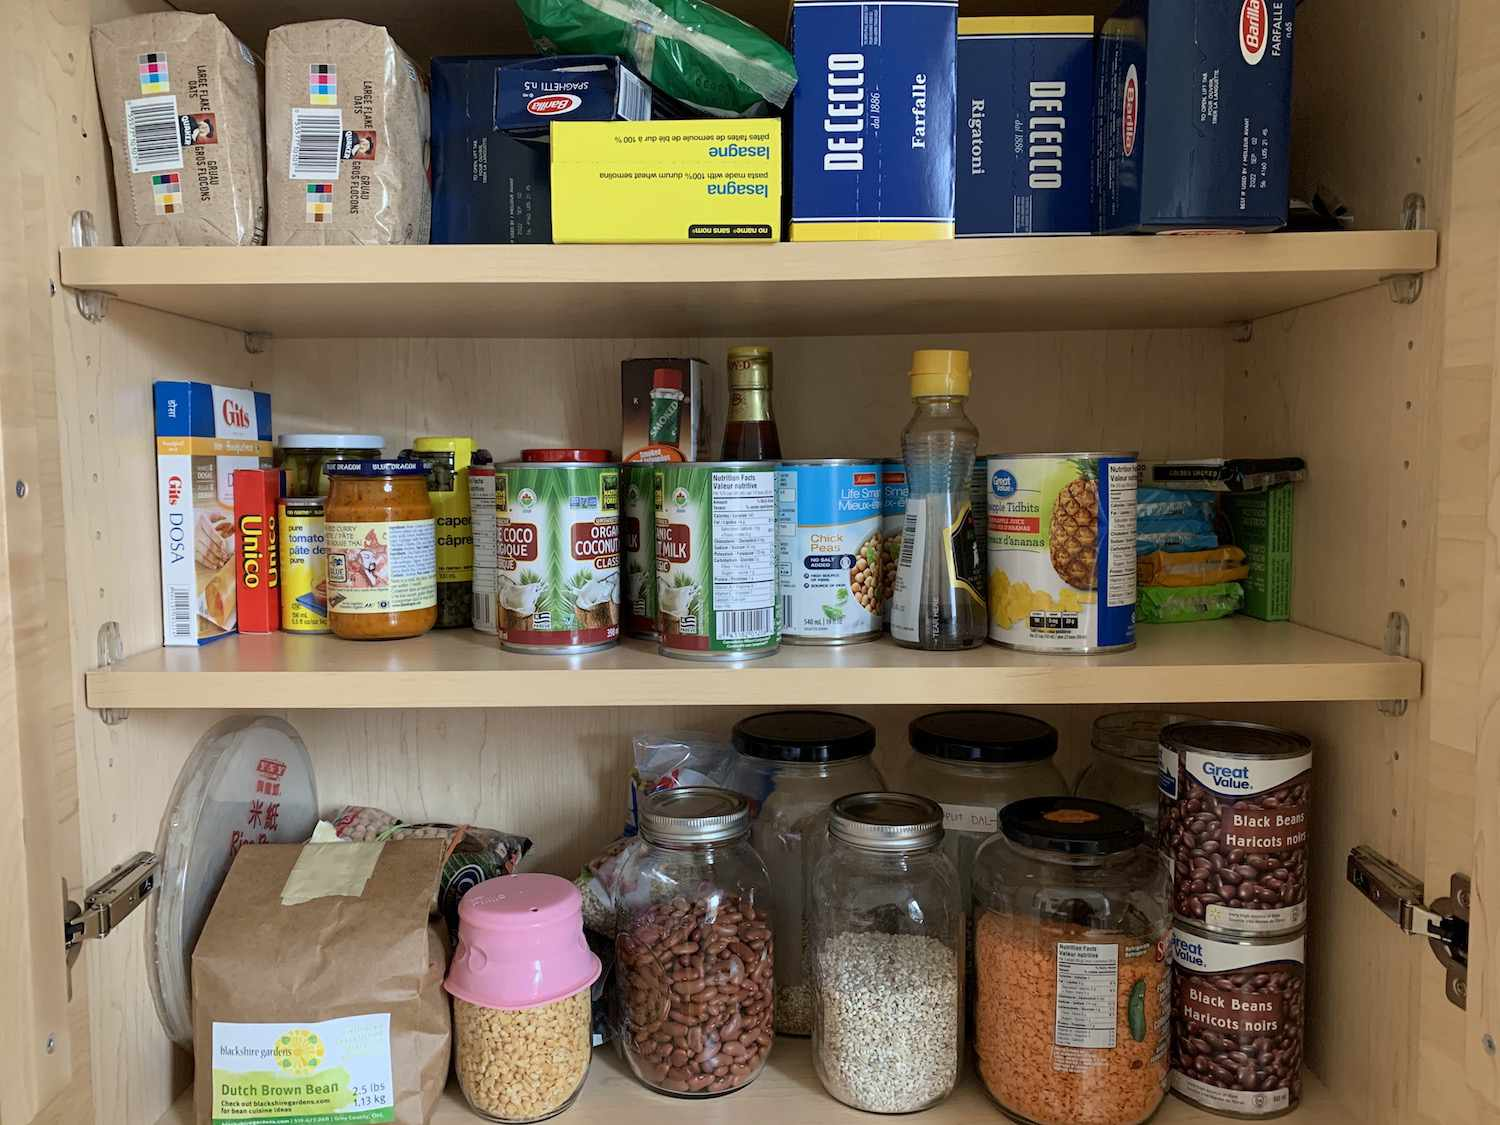 A few well-stocked pantry shelves